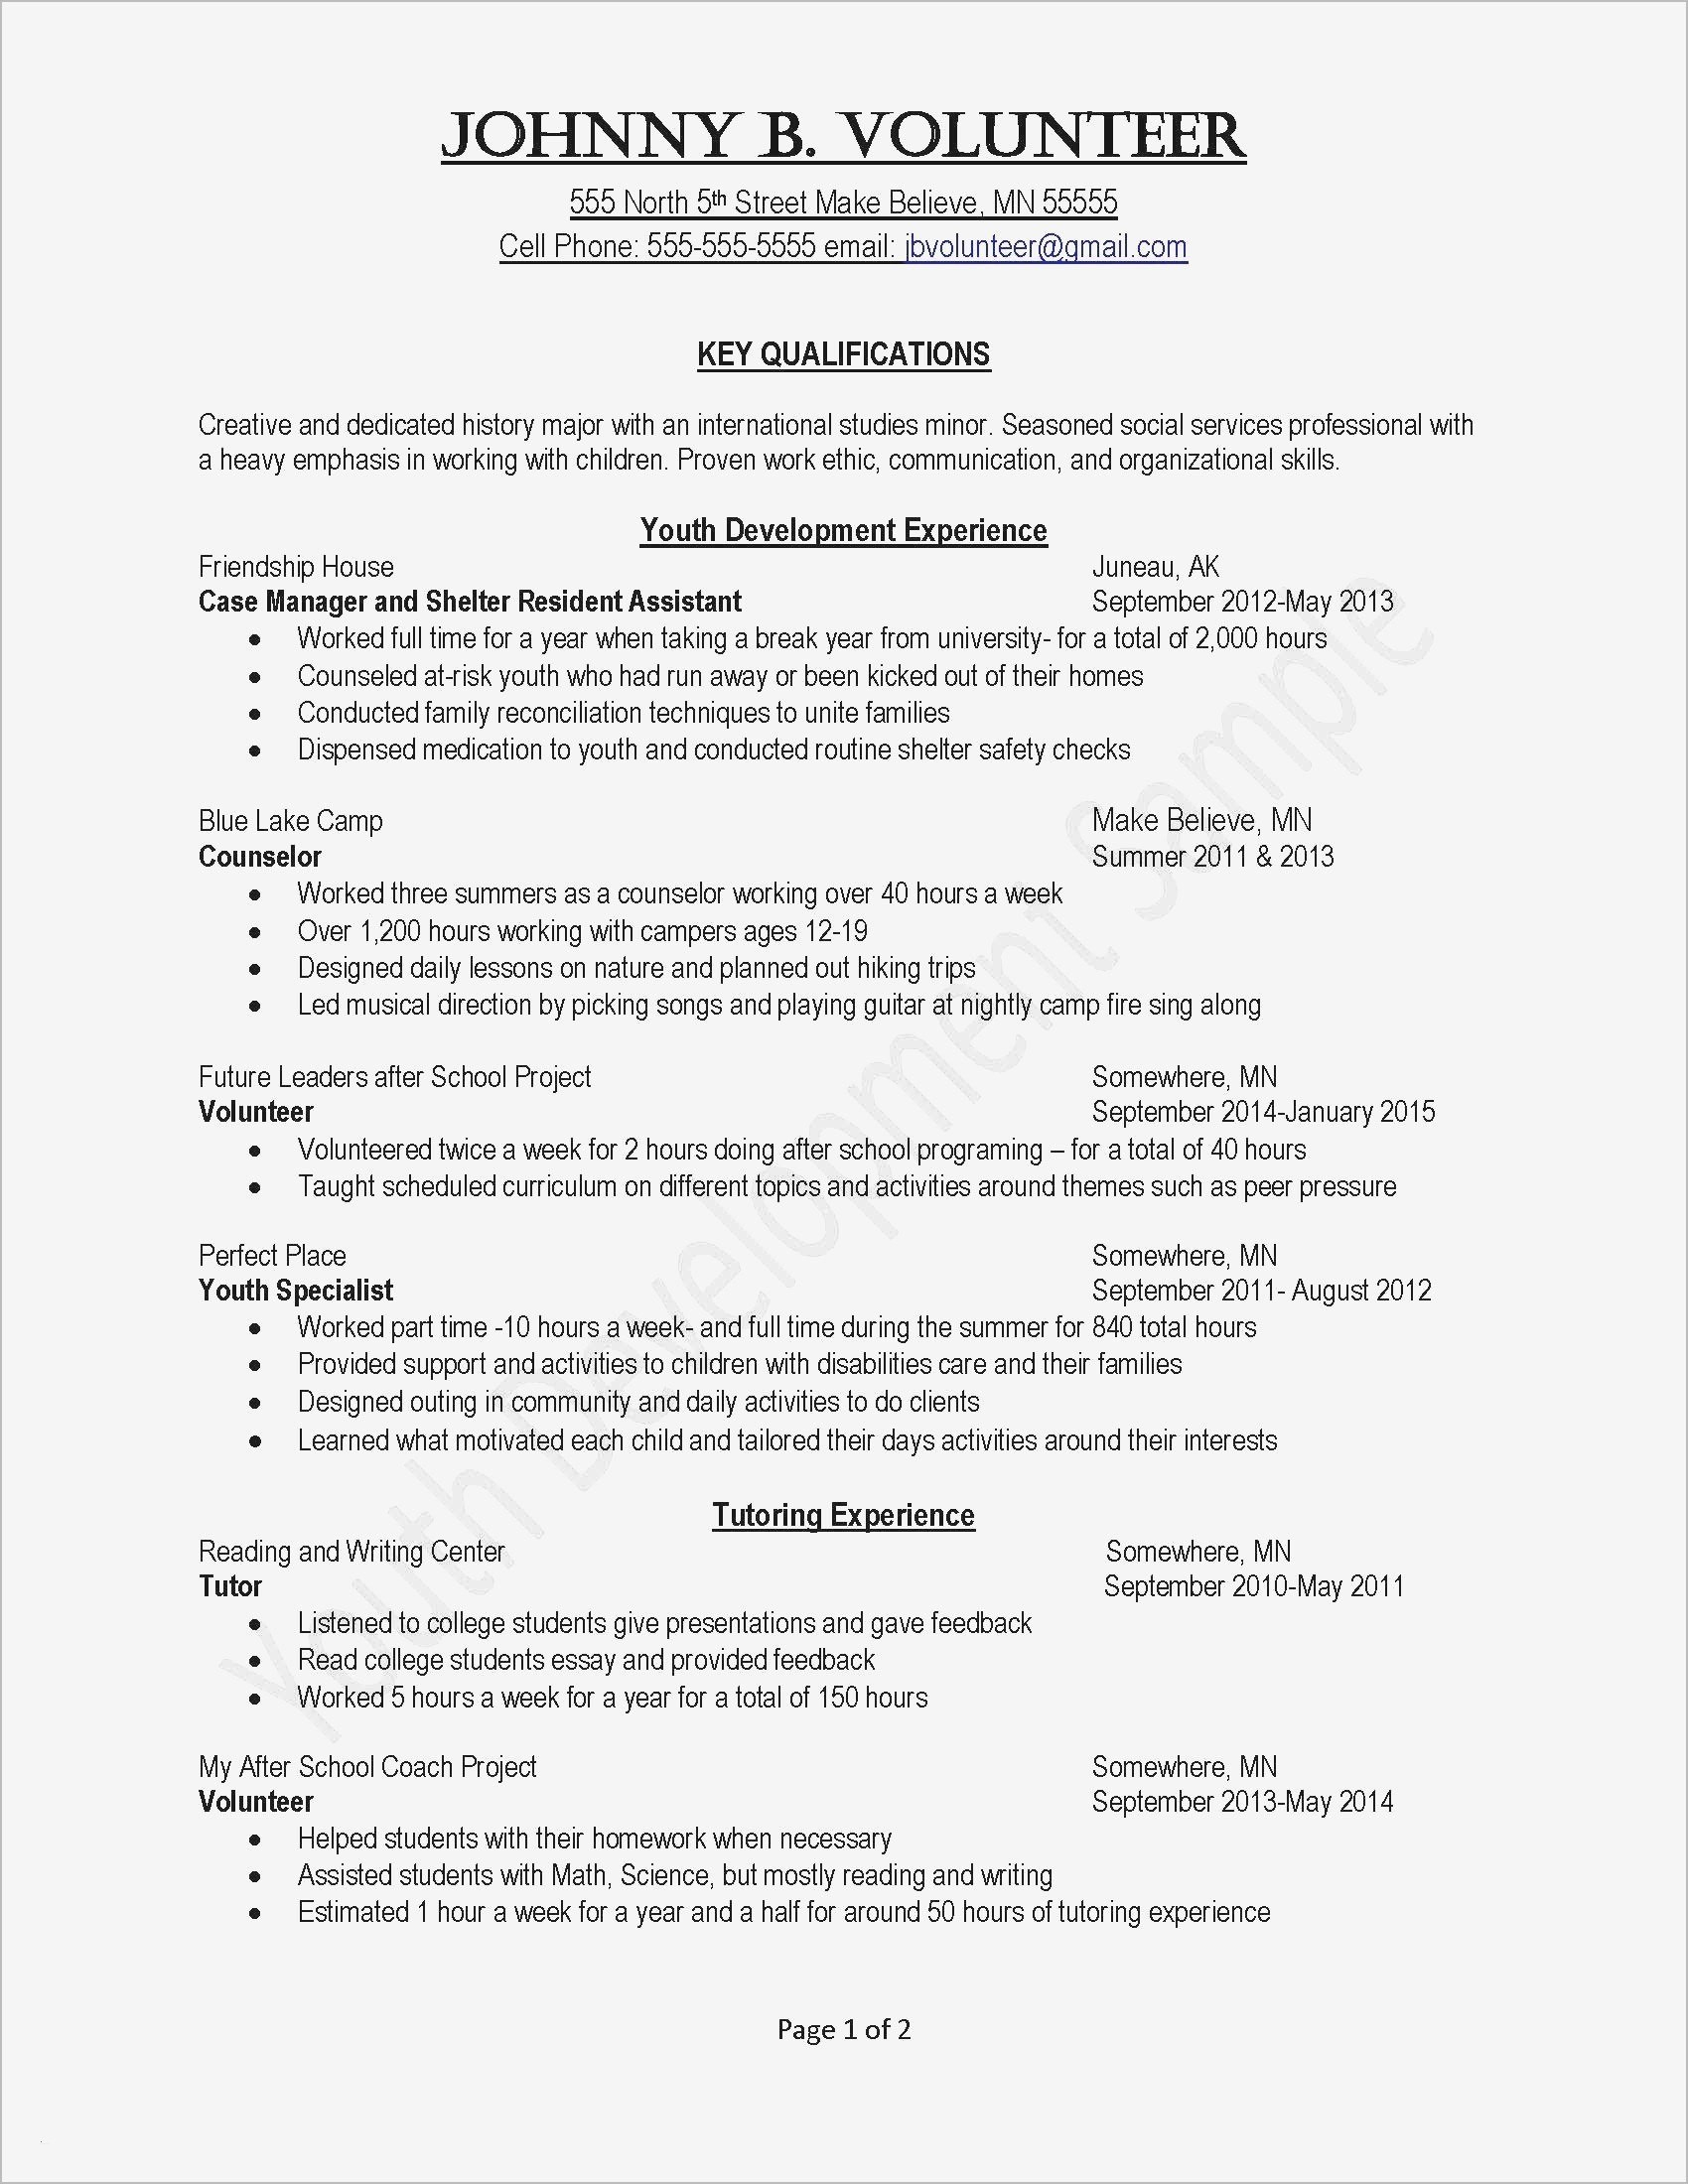 Voe Letter Template - Copy Brief Template